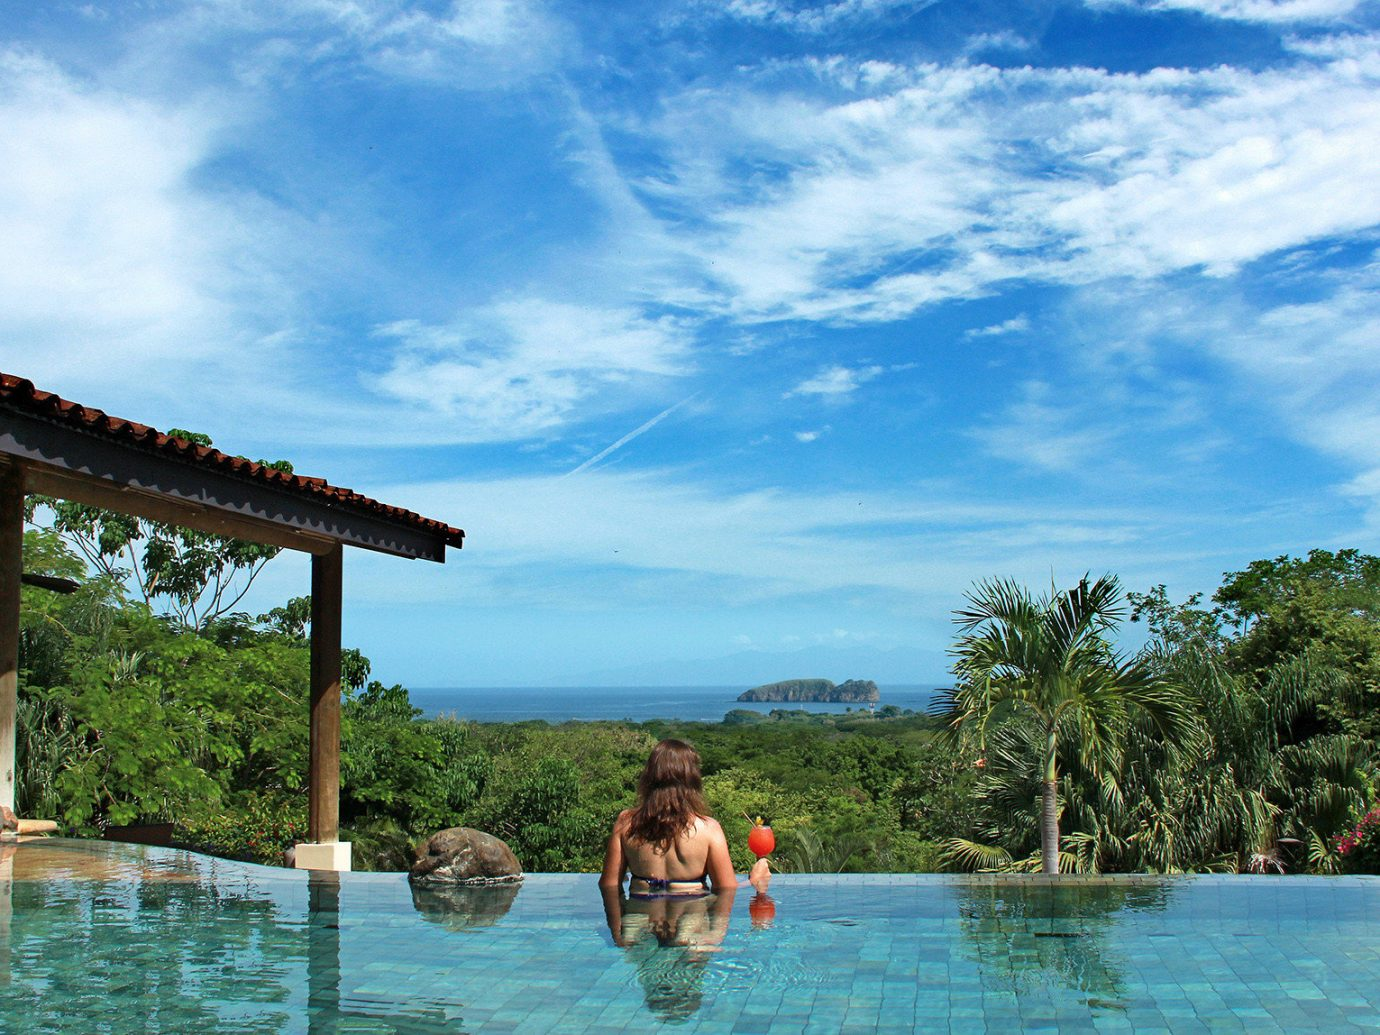 Pool at Villa Buena Onda, Guanacaste